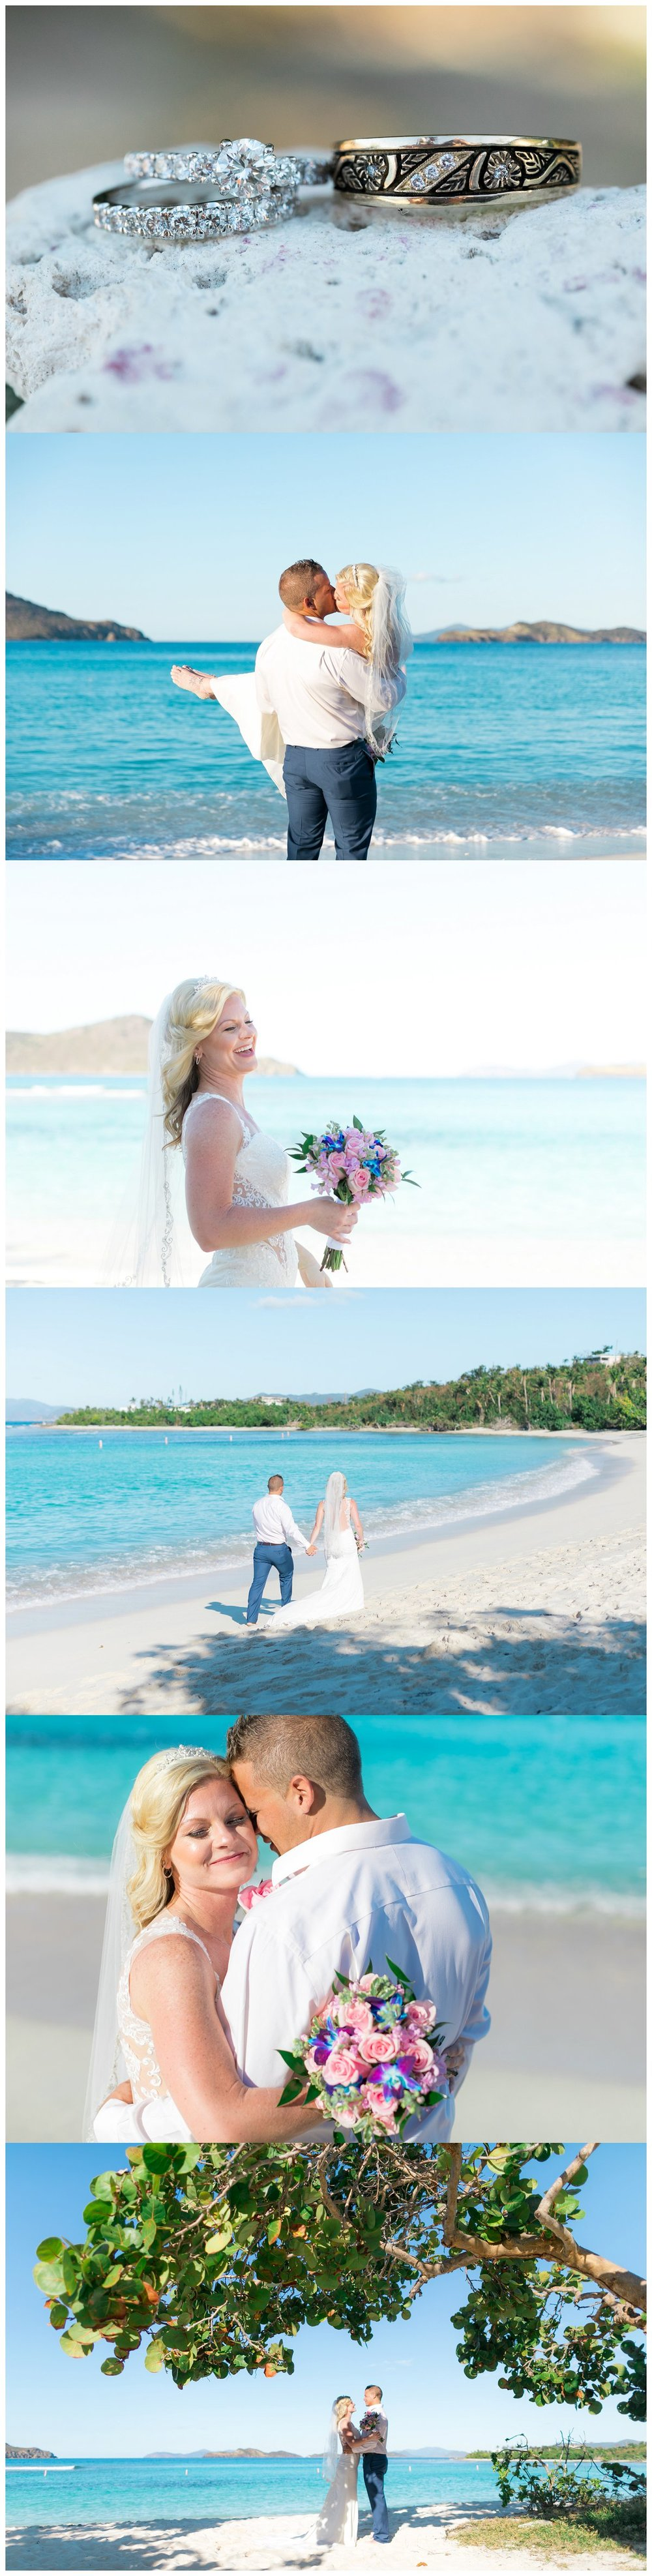 wedding-photography-crown-images-virgin-islands